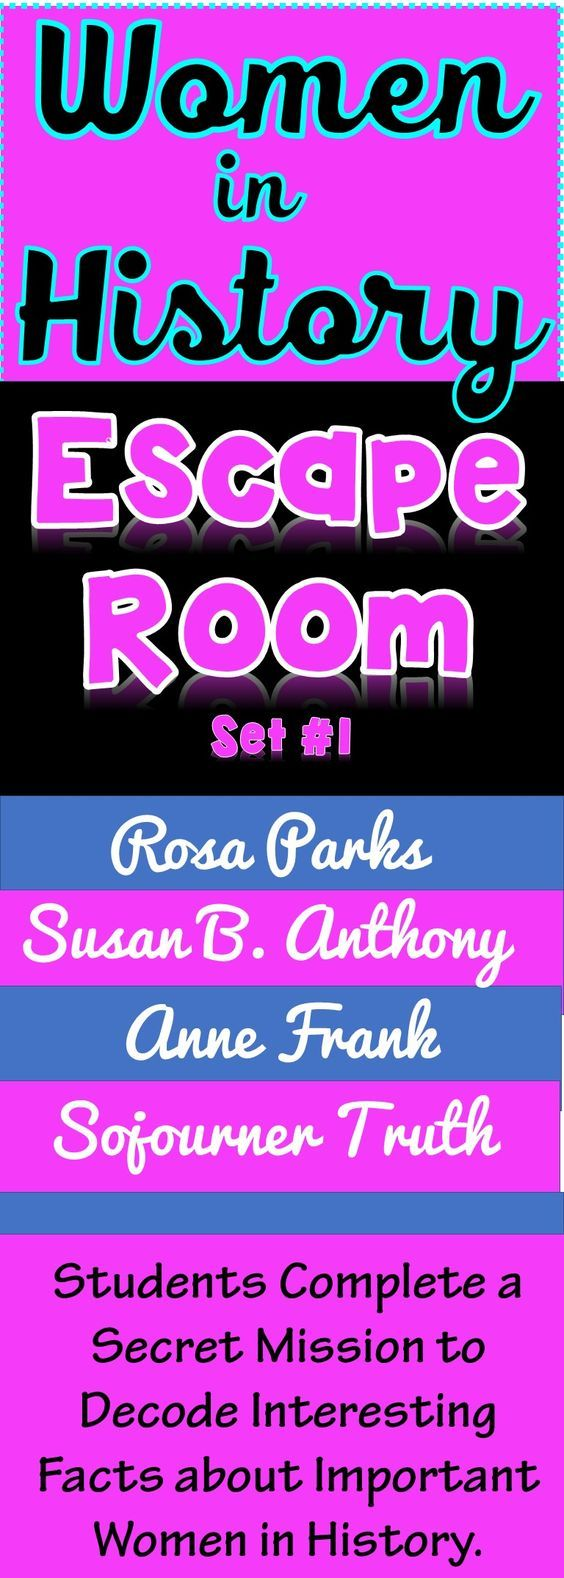 The Women in History Escape Room will take students on a secret mission around the classroom! This escape room has students decode facts about four inspirational women who changed the world. The women included in this resource are: Rosa Parks, Susan B. Anthony, Sojourner Truth and Anne Frank. Students may have heard those names before, but do they understand the impact they made on the world today?